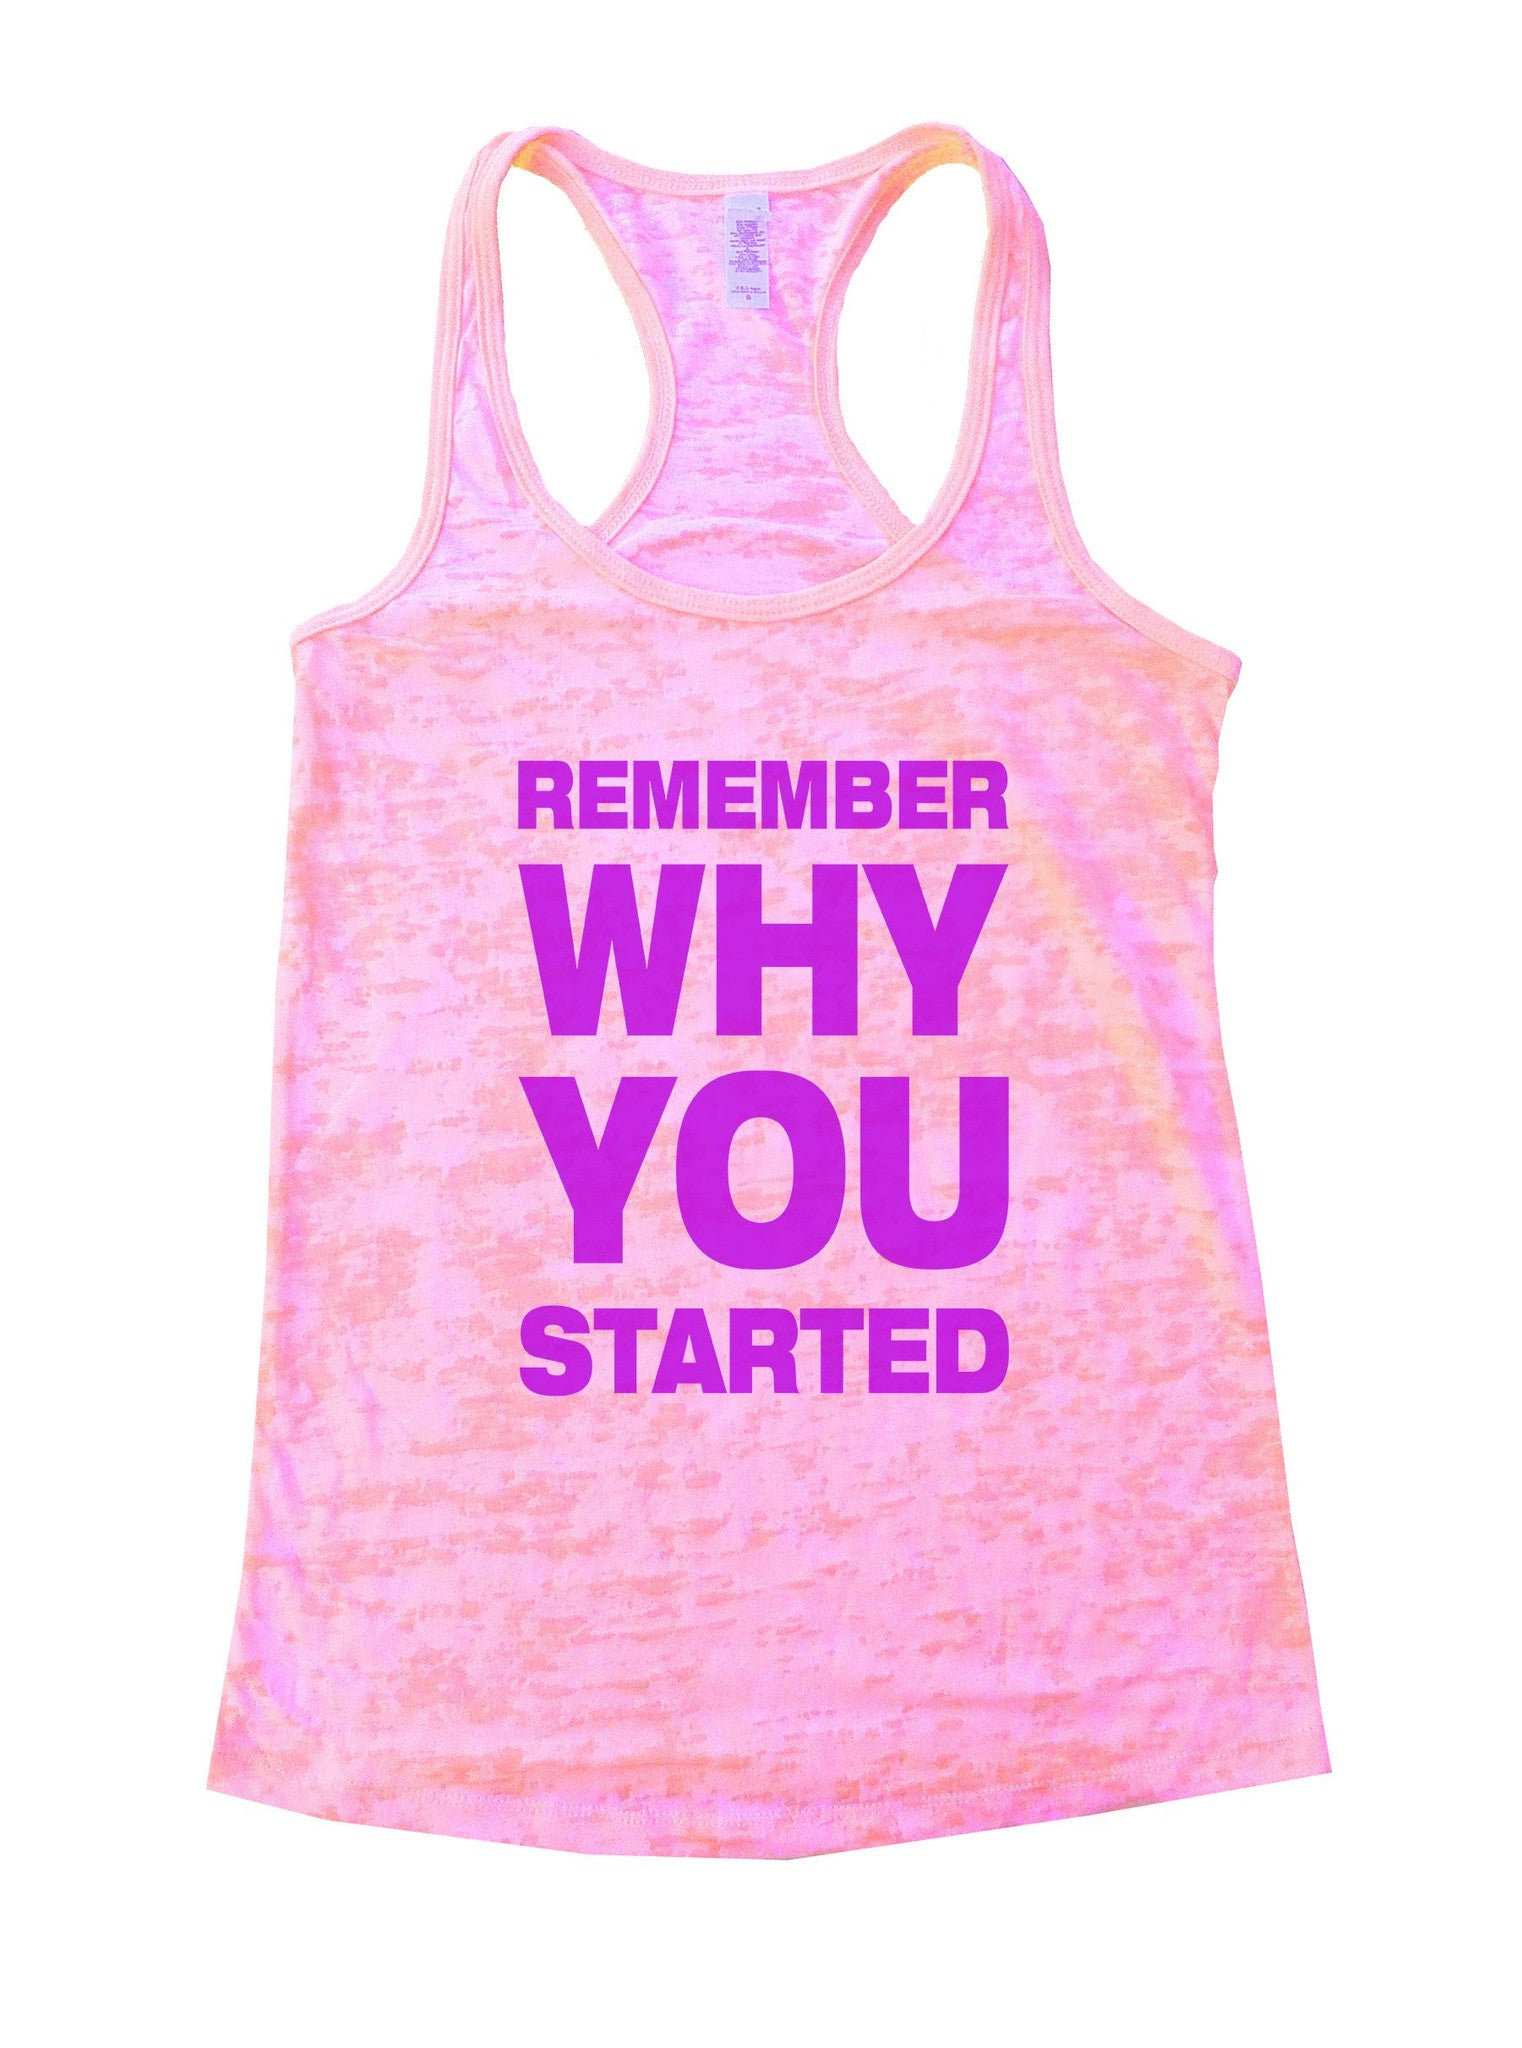 Remember Why You Started Burnout Tank Top By BurnoutTankTops.com - 852 - Funny Shirts Tank Tops Burnouts and Triblends  - 1